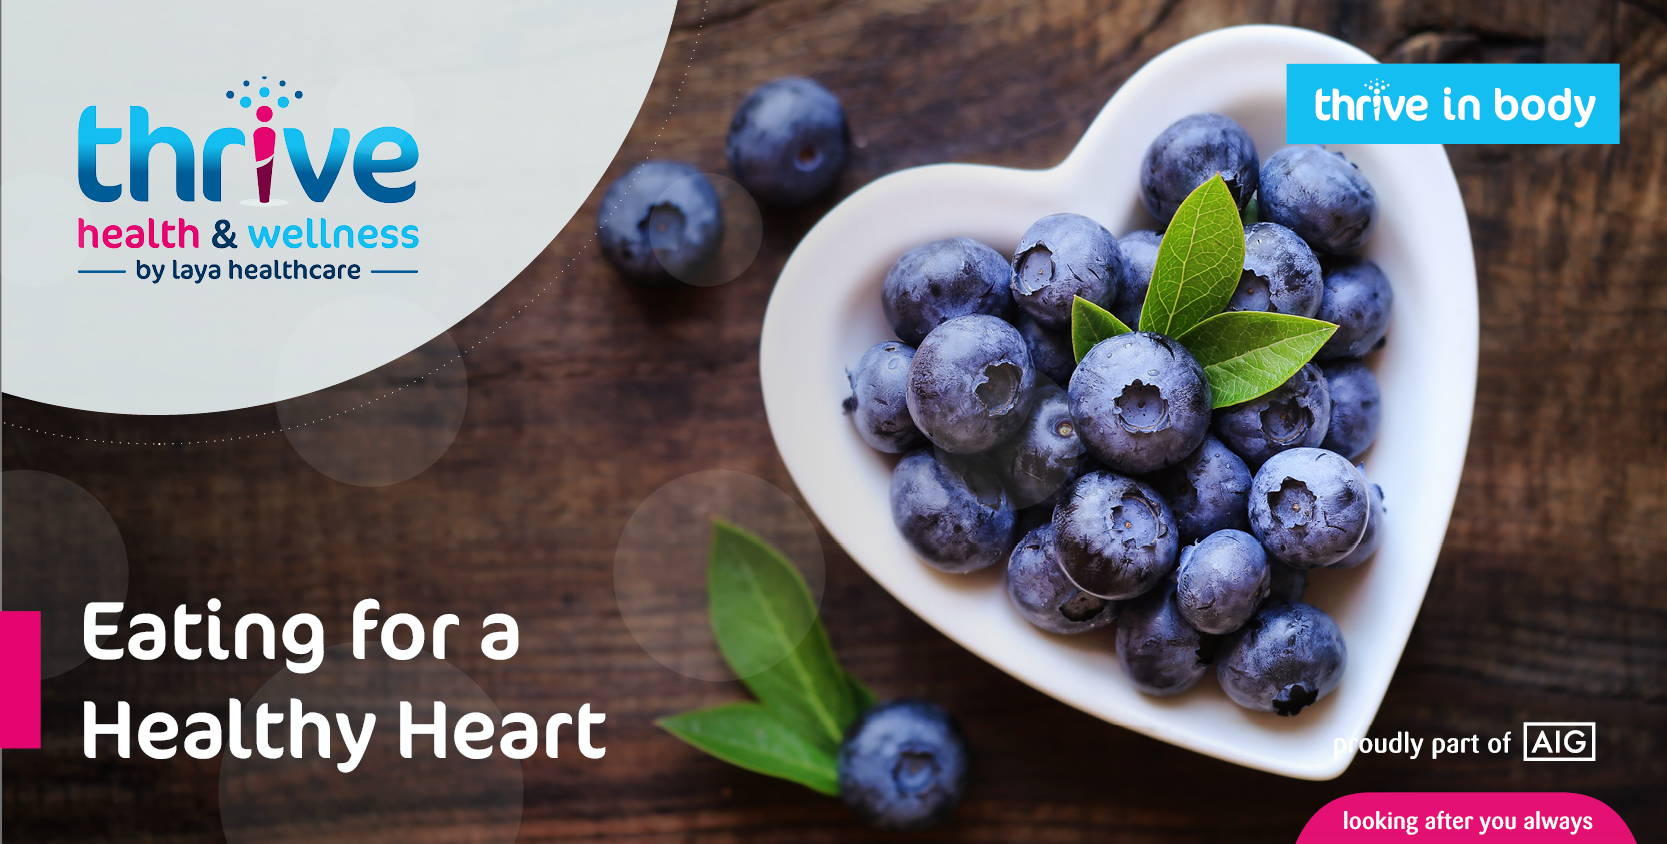 MAILCHIMP TEMPLATE. Eating for a Healthy Heart.jpg